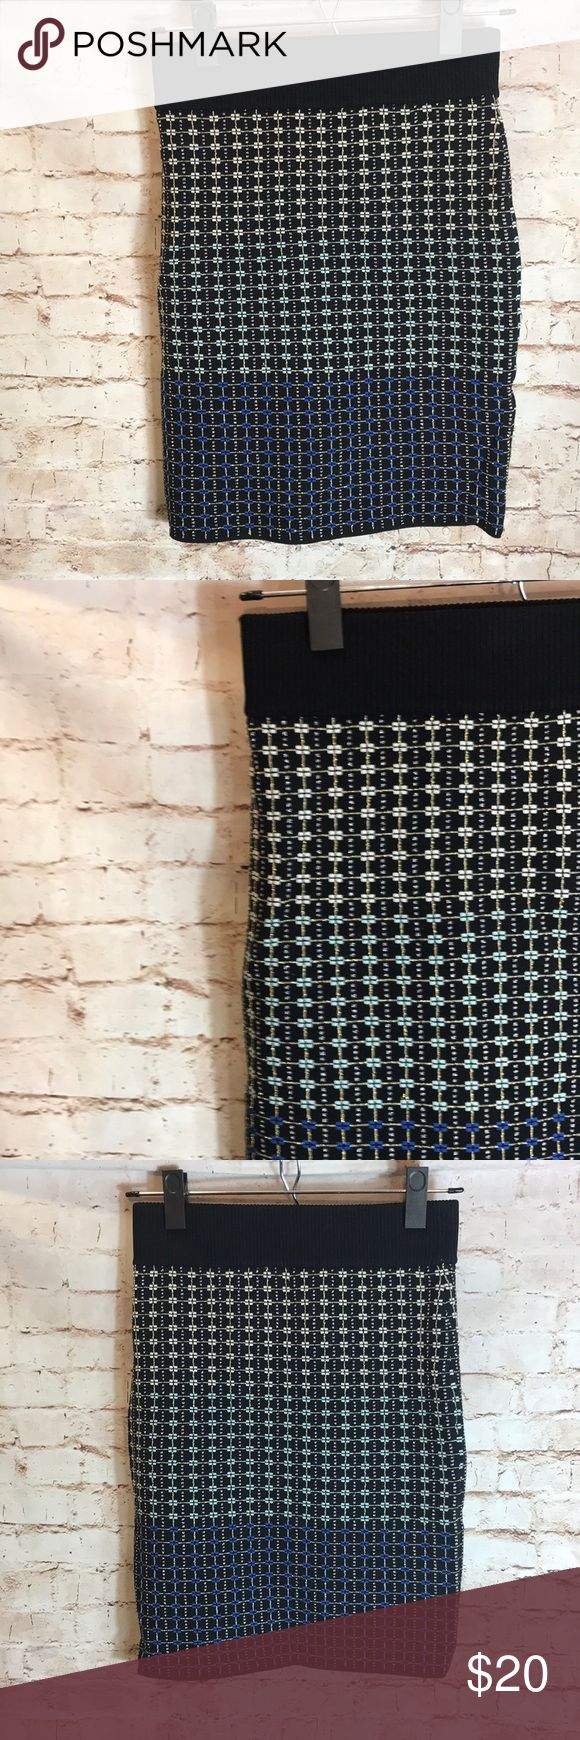 """✨PARKER✨ Parker printed stretch skirt from saks 5 ave size Small  Laying Flat  ▫️Waist: 13"""" ▫️Length:18"""" ▫️Condition : Preowned no rips, tears, marks or stains . Parker Skirts Pencil"""